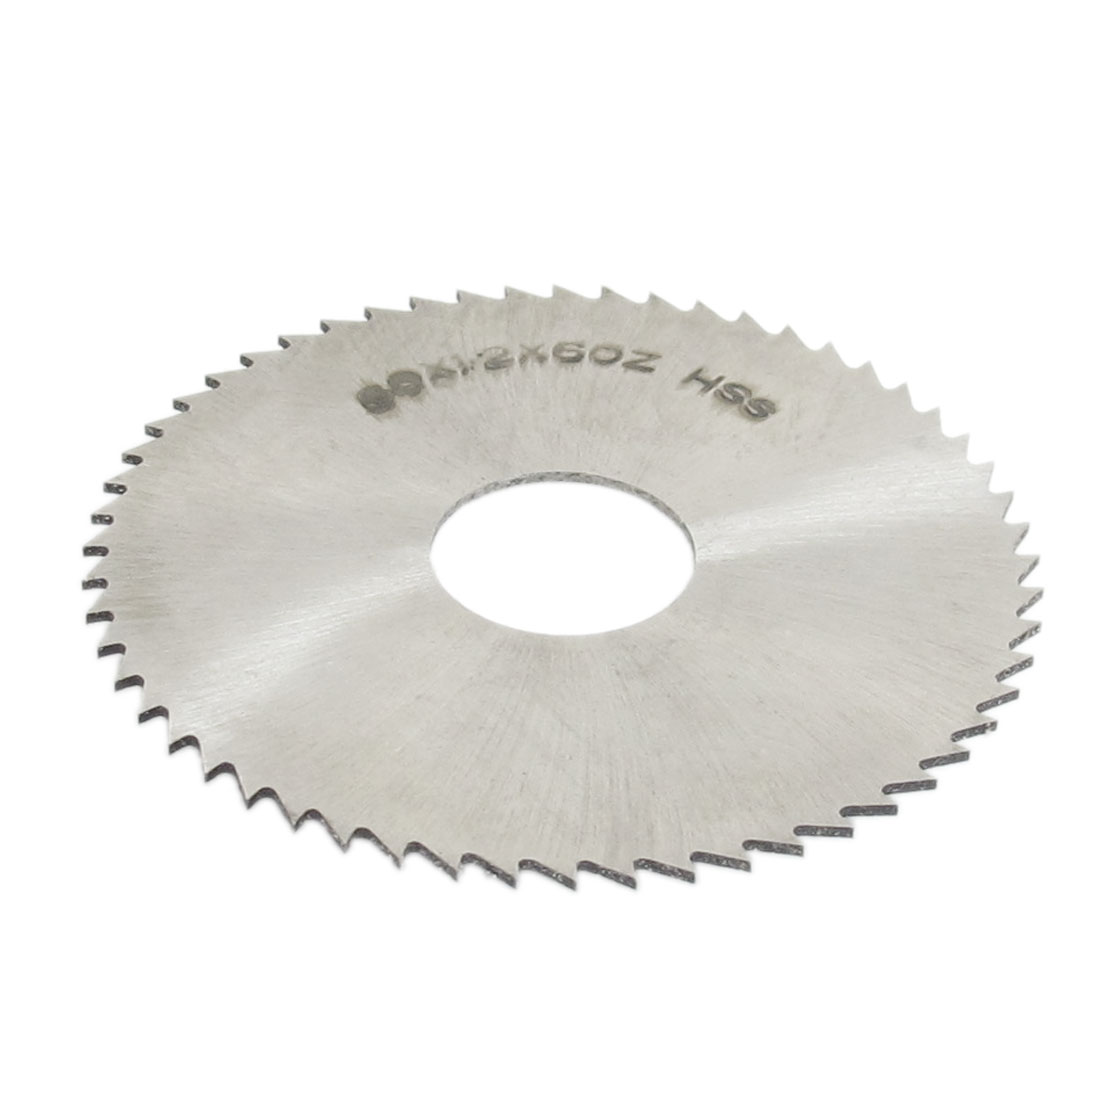 22mm Arbor Hole Dia 1.2mm Thick 60 Teeth HSS Circular Slotting Saw